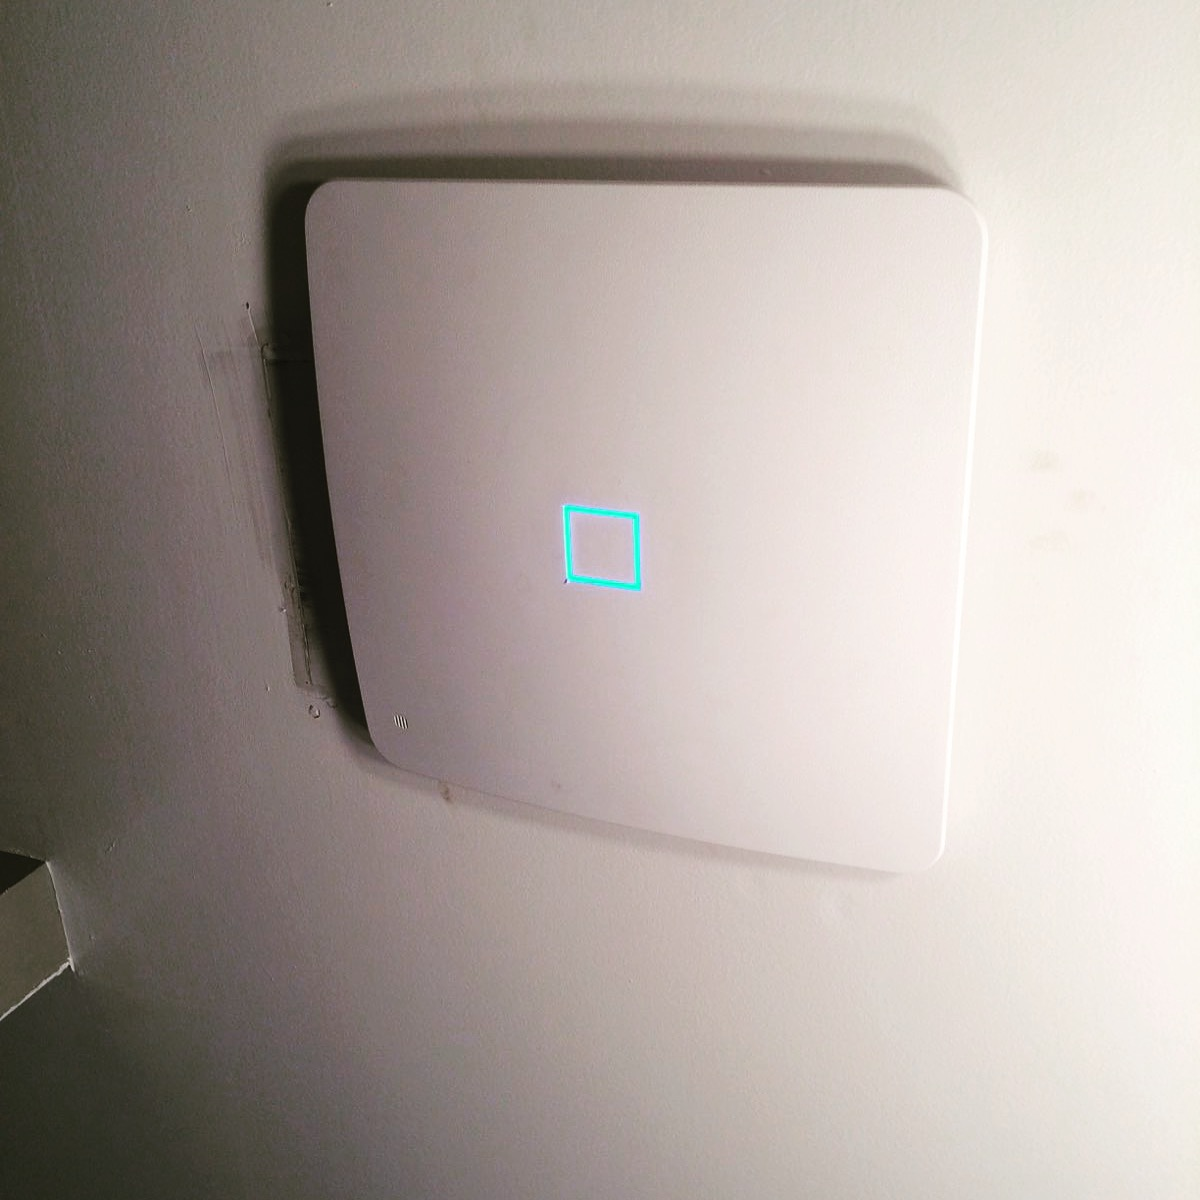 Veent The Smart Bathroom Exhaust Fan Thats A Must Have How Many Circuits In